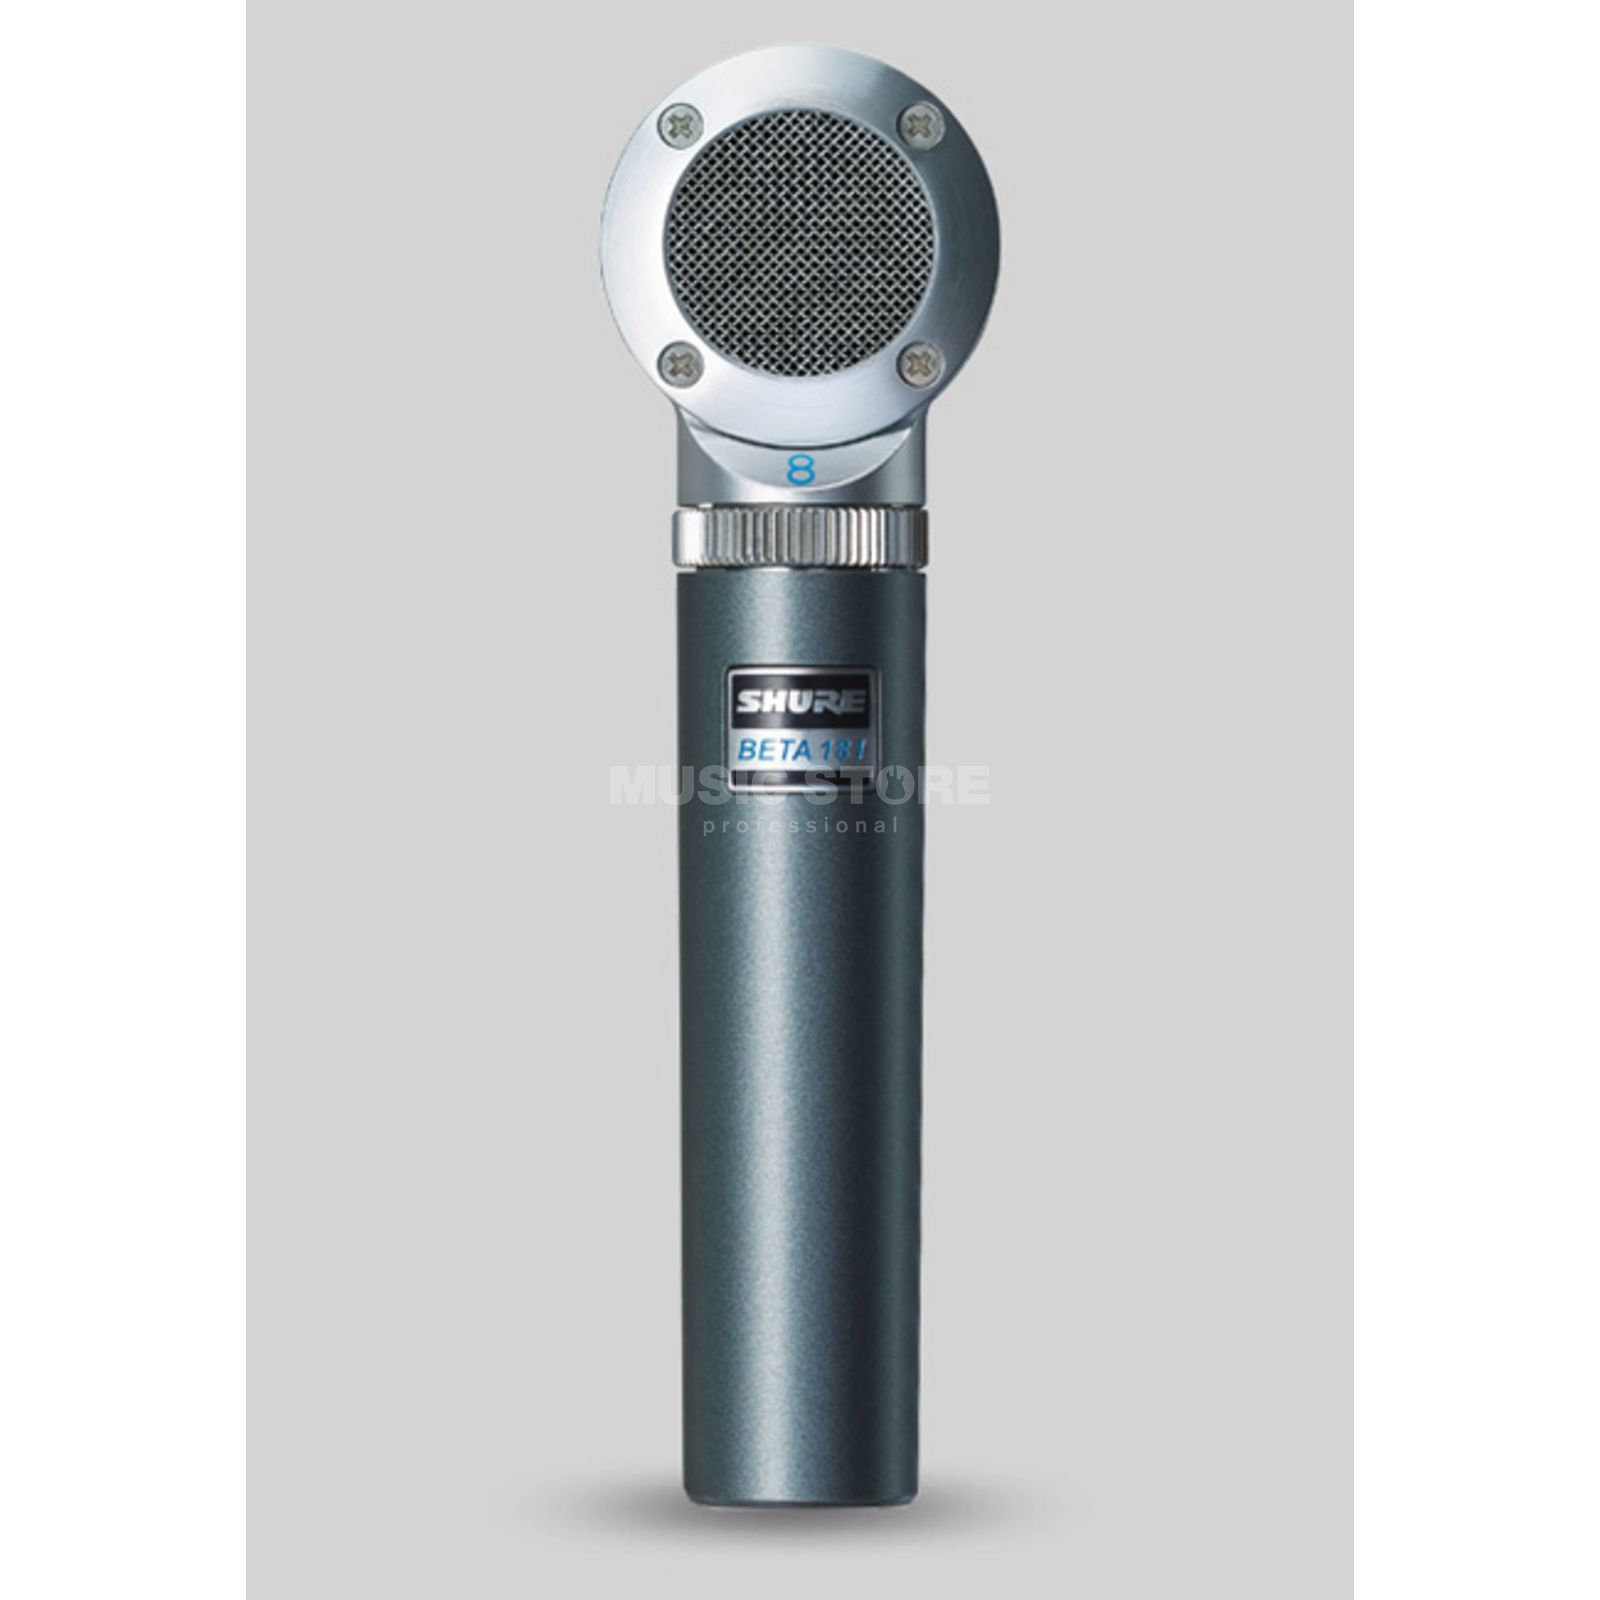 Shure Beta 181-C small-membrane Microphone Produktbillede